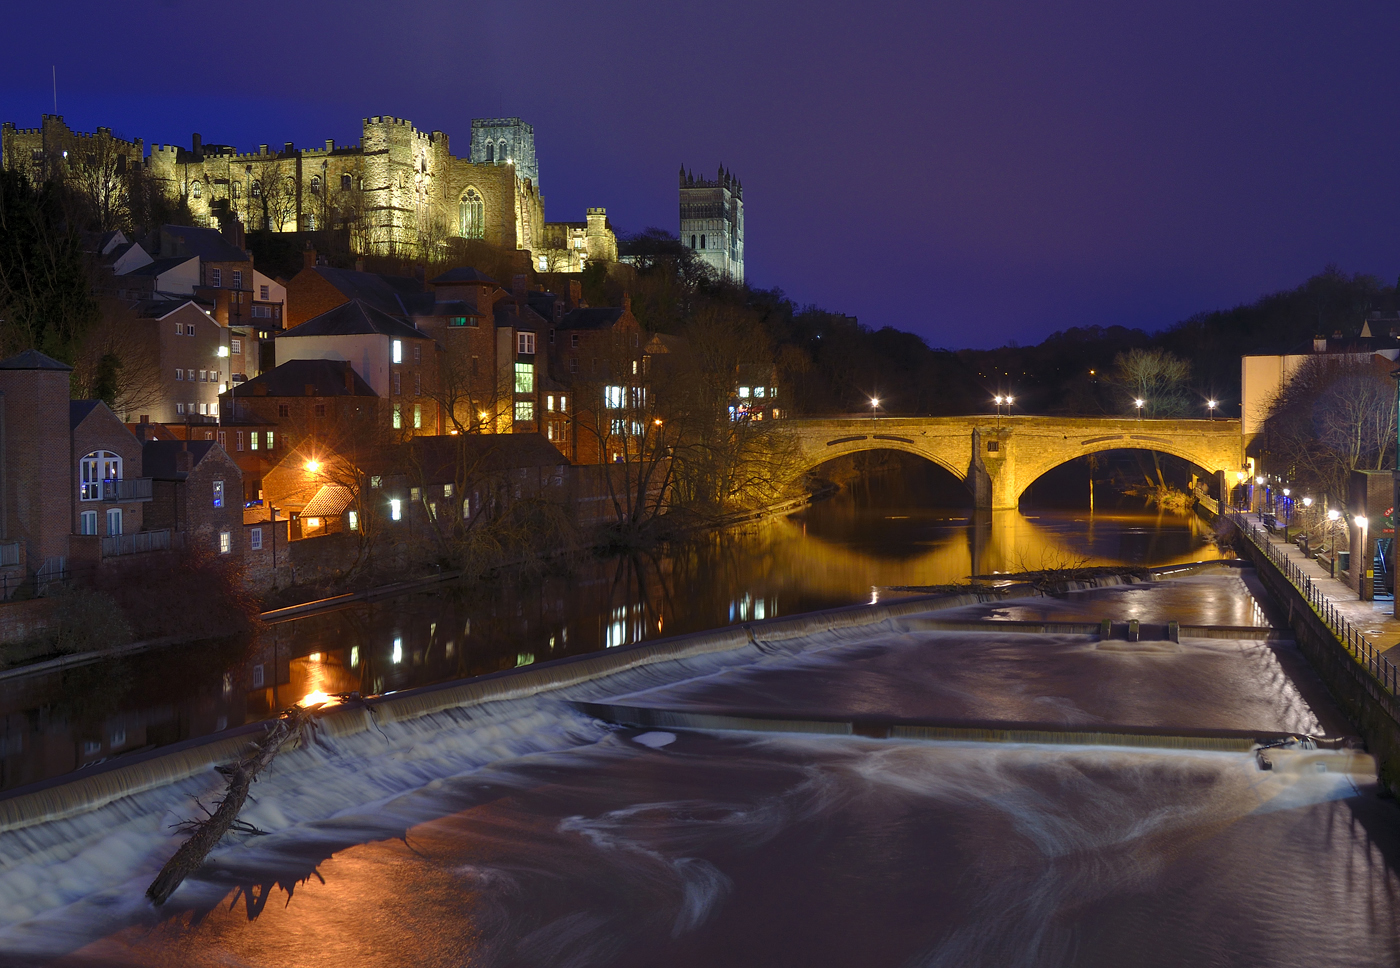 Durham at night, Mike Vasey